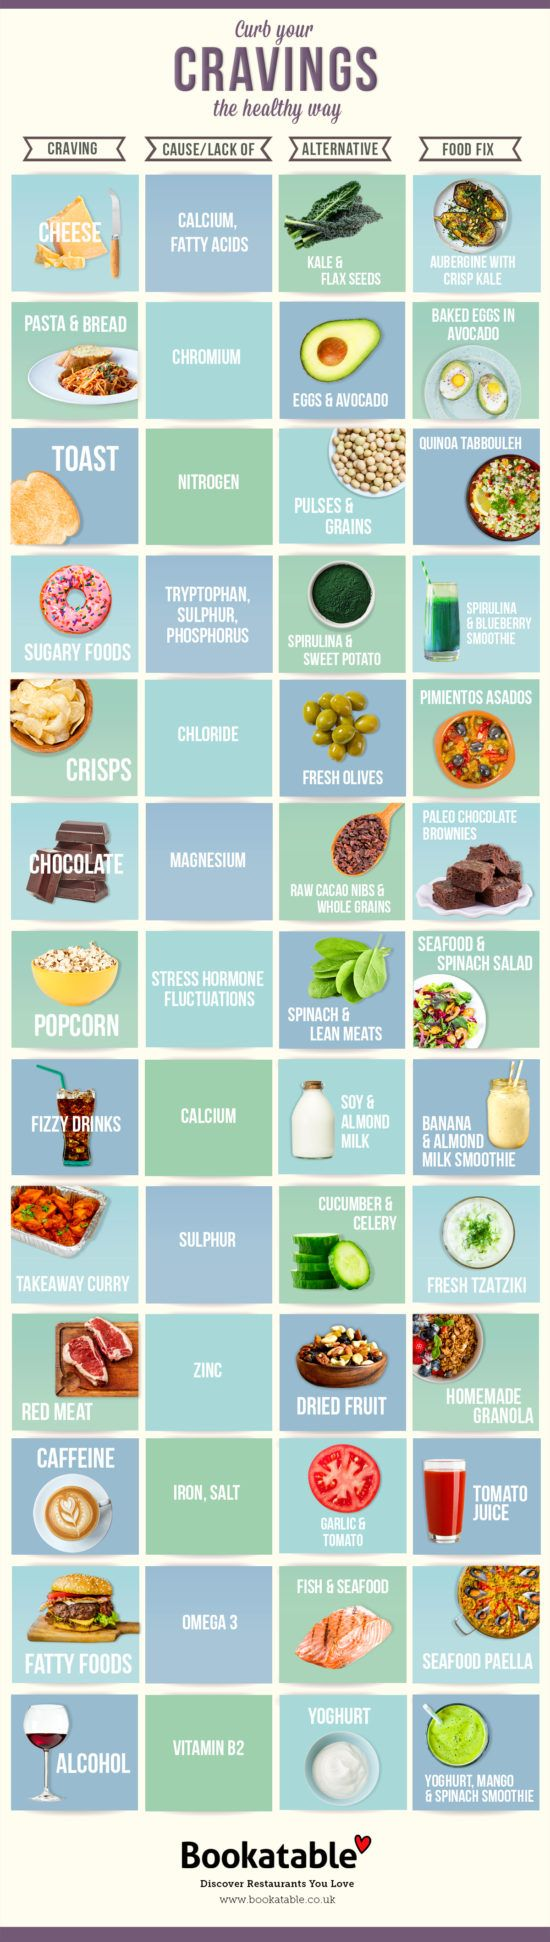 How+To+Curb+Your+Cravings